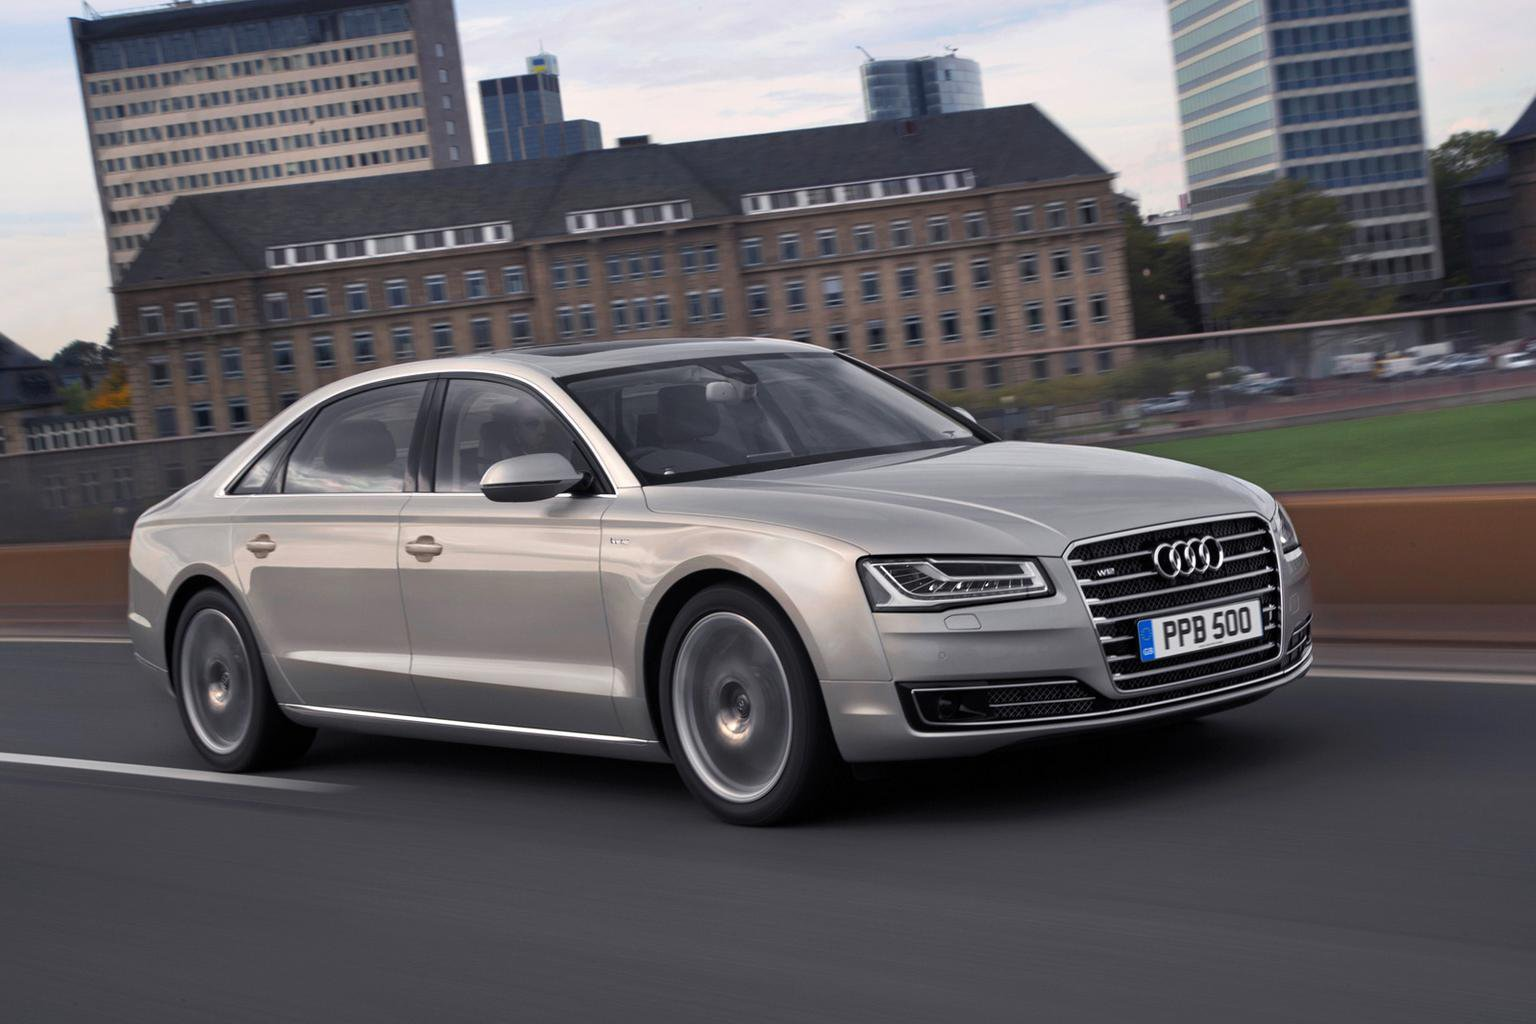 2014 Audi A8 prices and kit confirmed